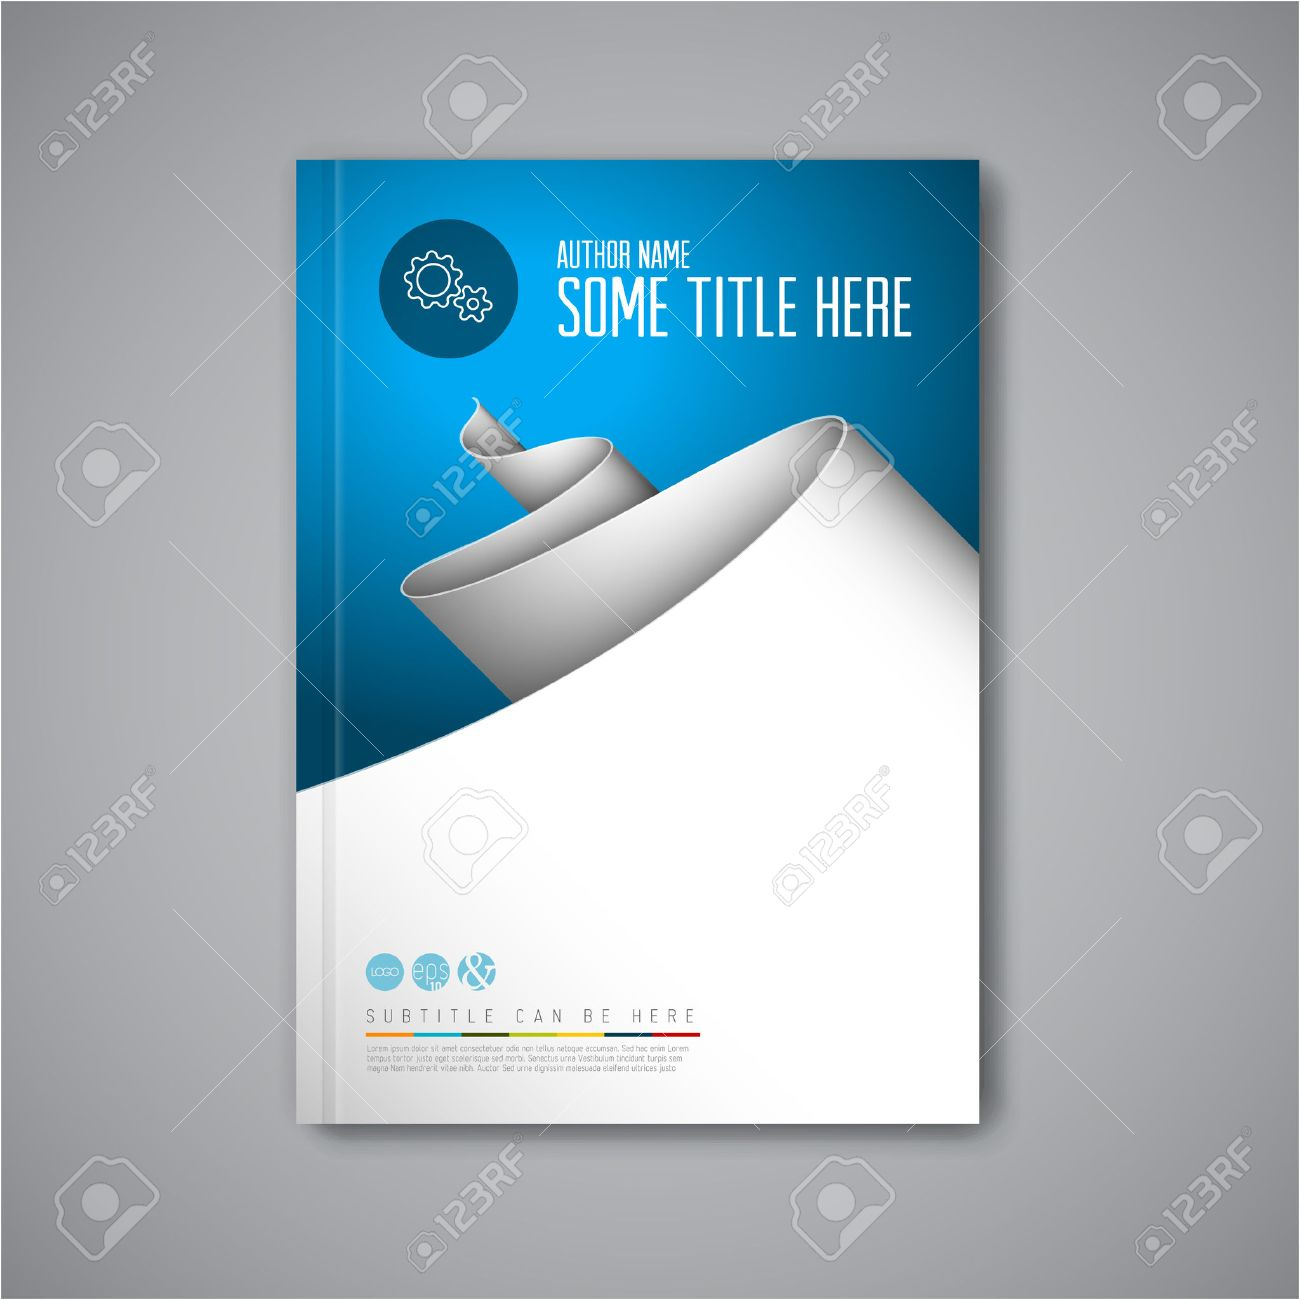 cover page design stock photos images royalty cover page cover page design modern vector abstract brochure book flyer design template paper